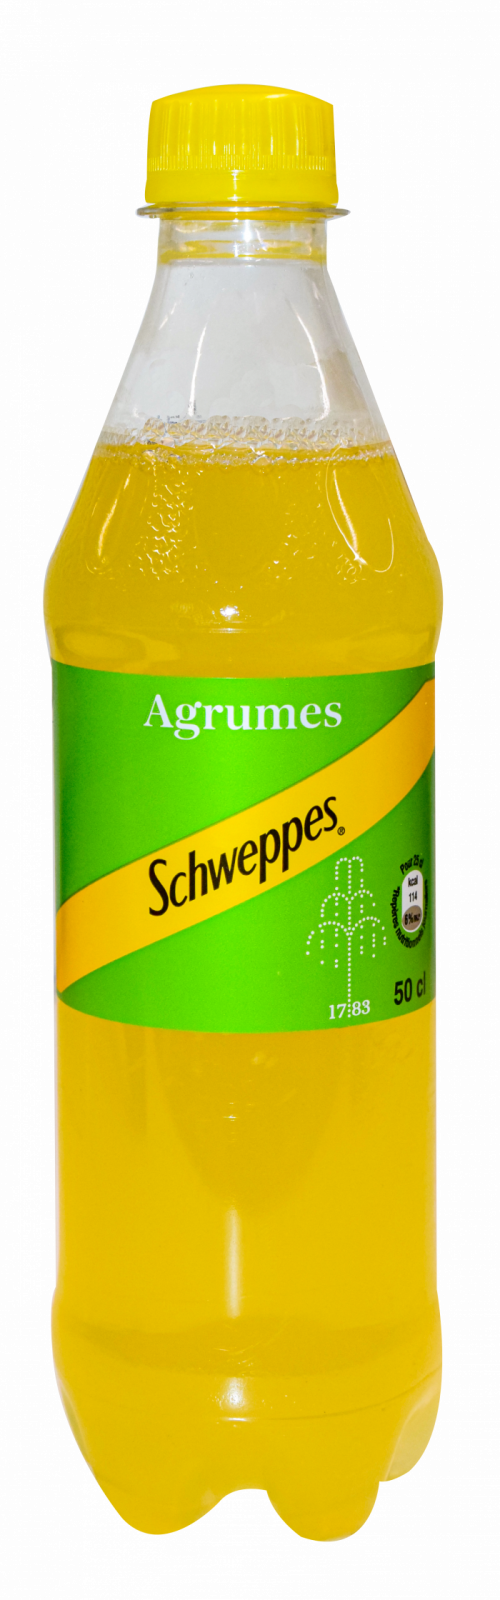 Schweppes Agrumes – 50cl